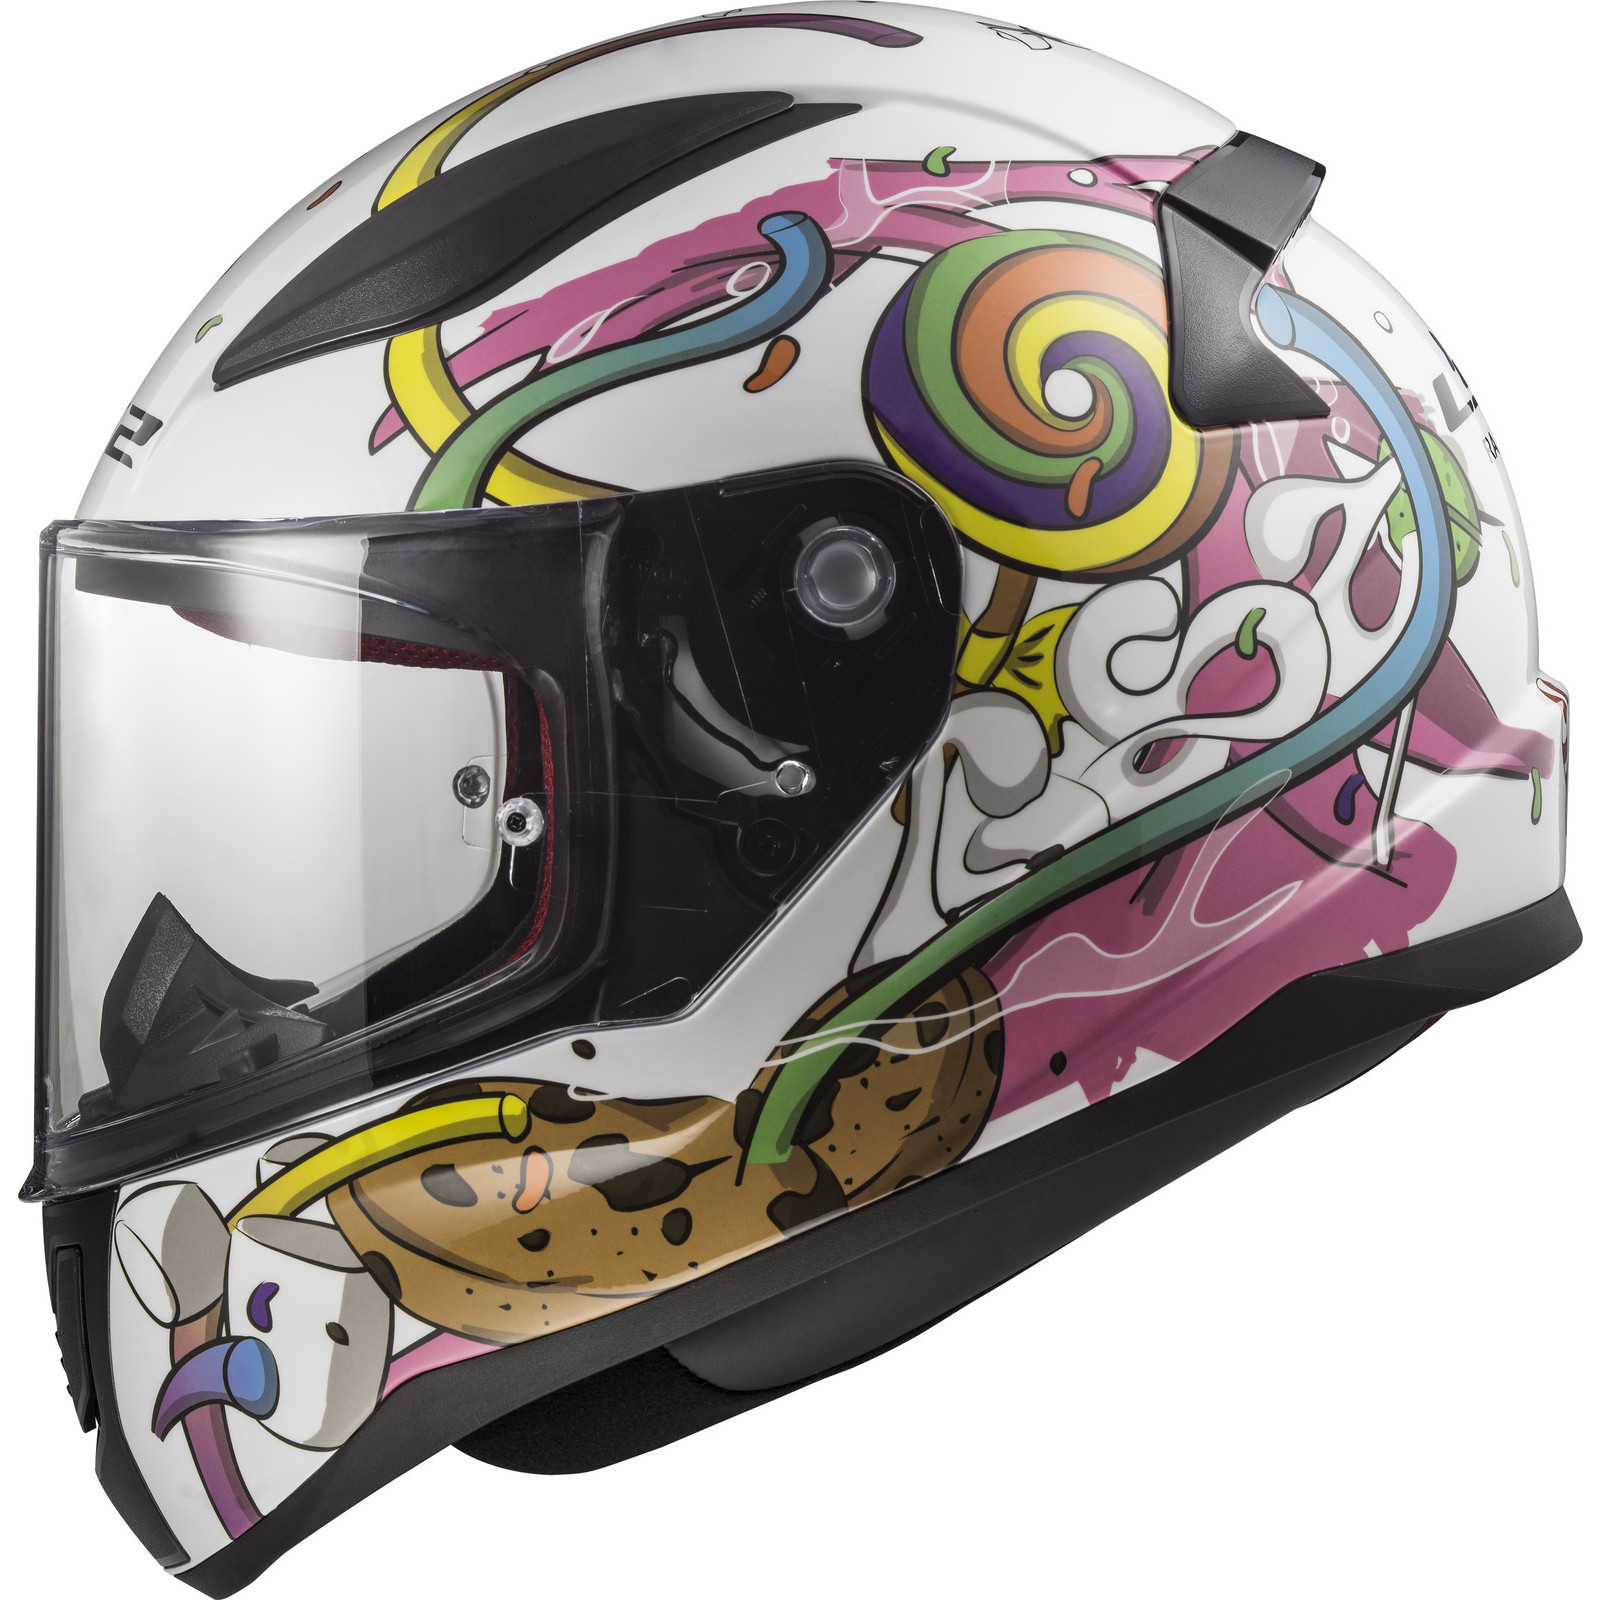 Crazy motorcycle helmet stickers